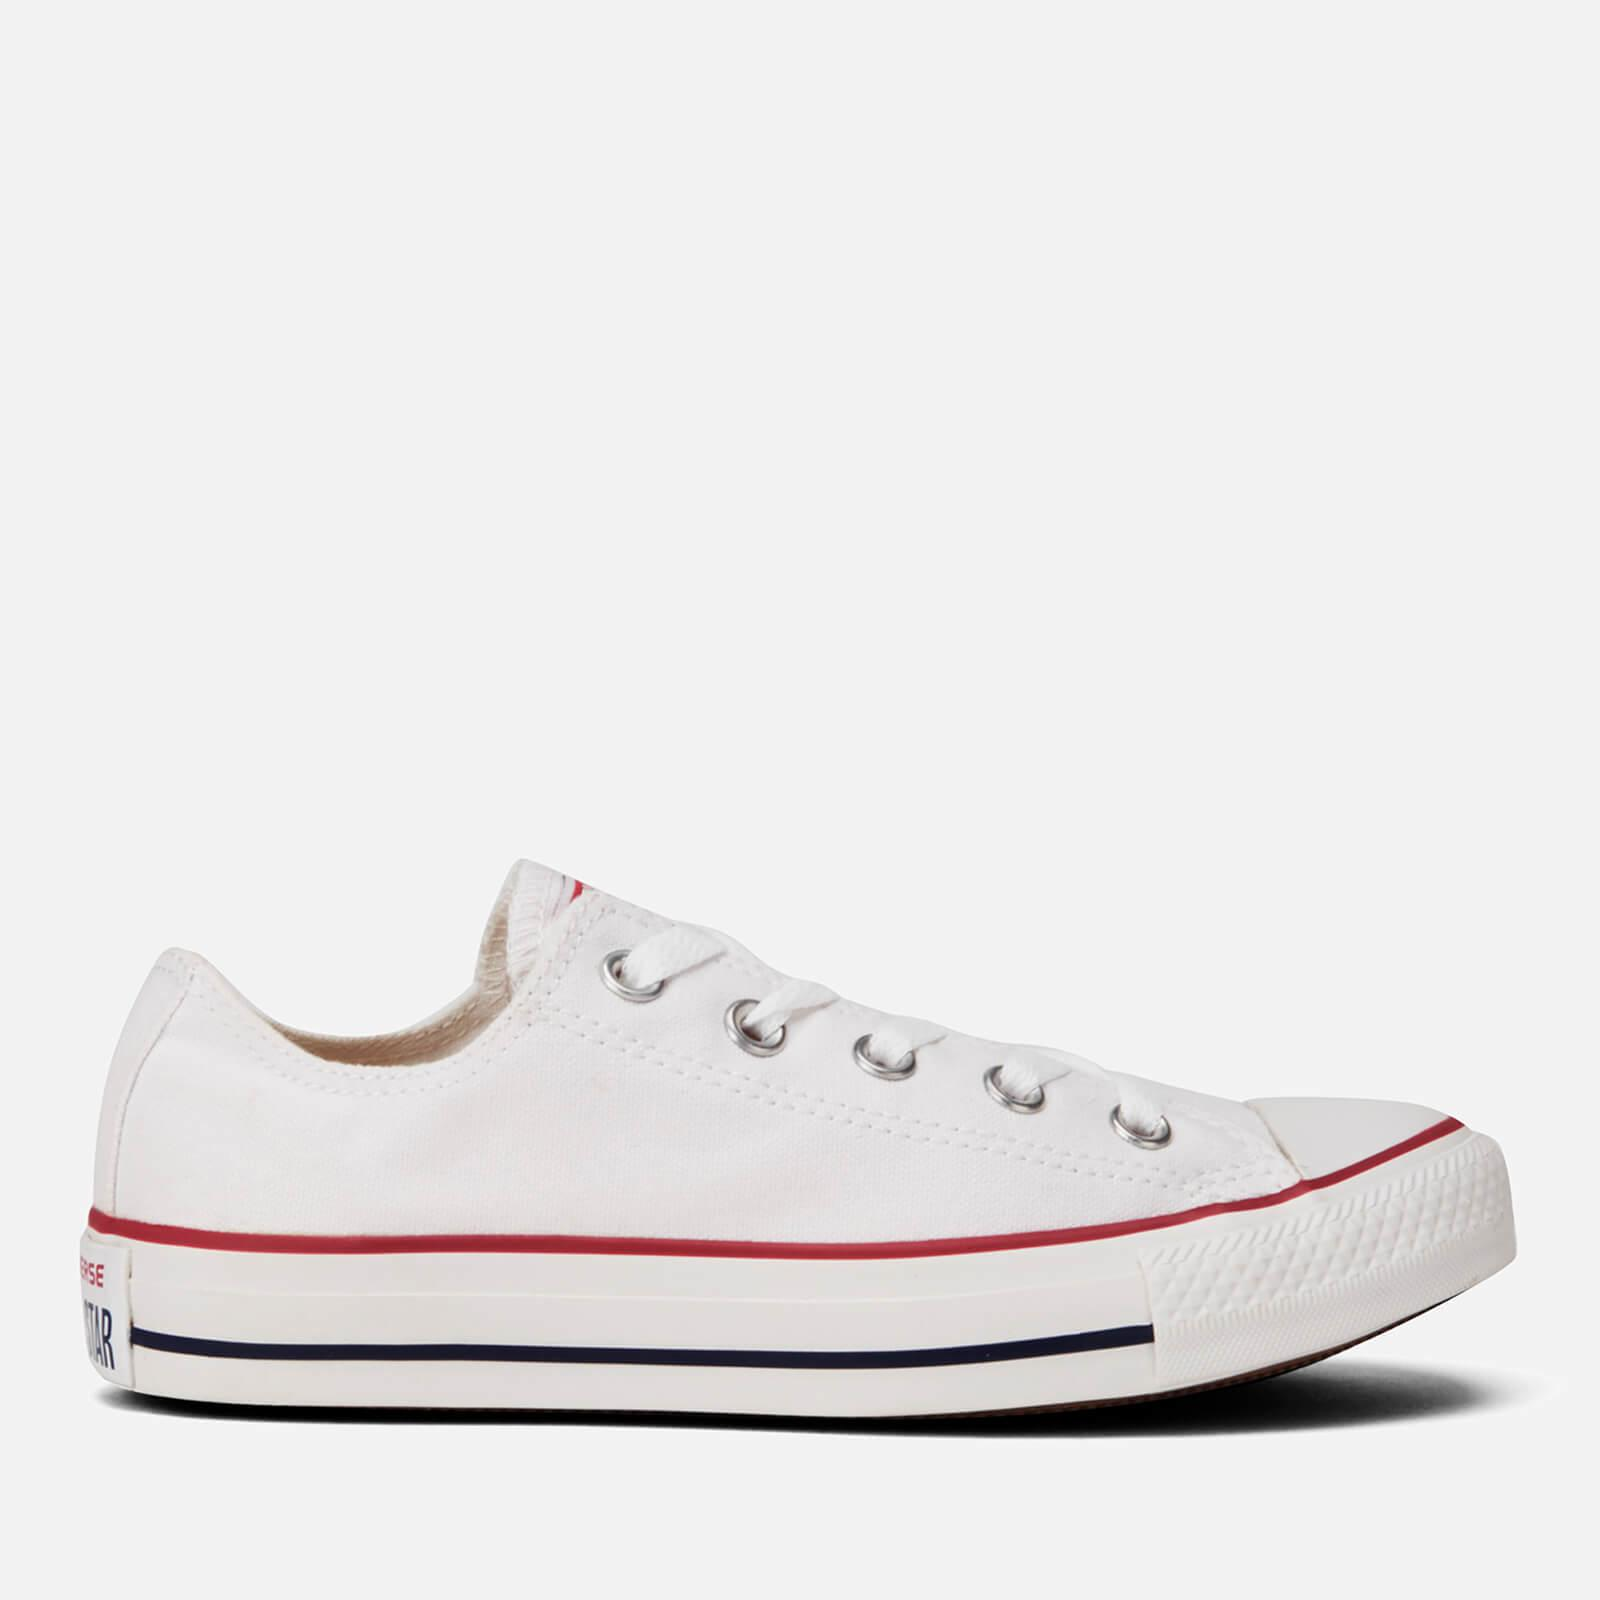 552ba686f427 Converse. Men s Chuck Taylor All Star Ox Canvas Trainers. £50 From AllSole